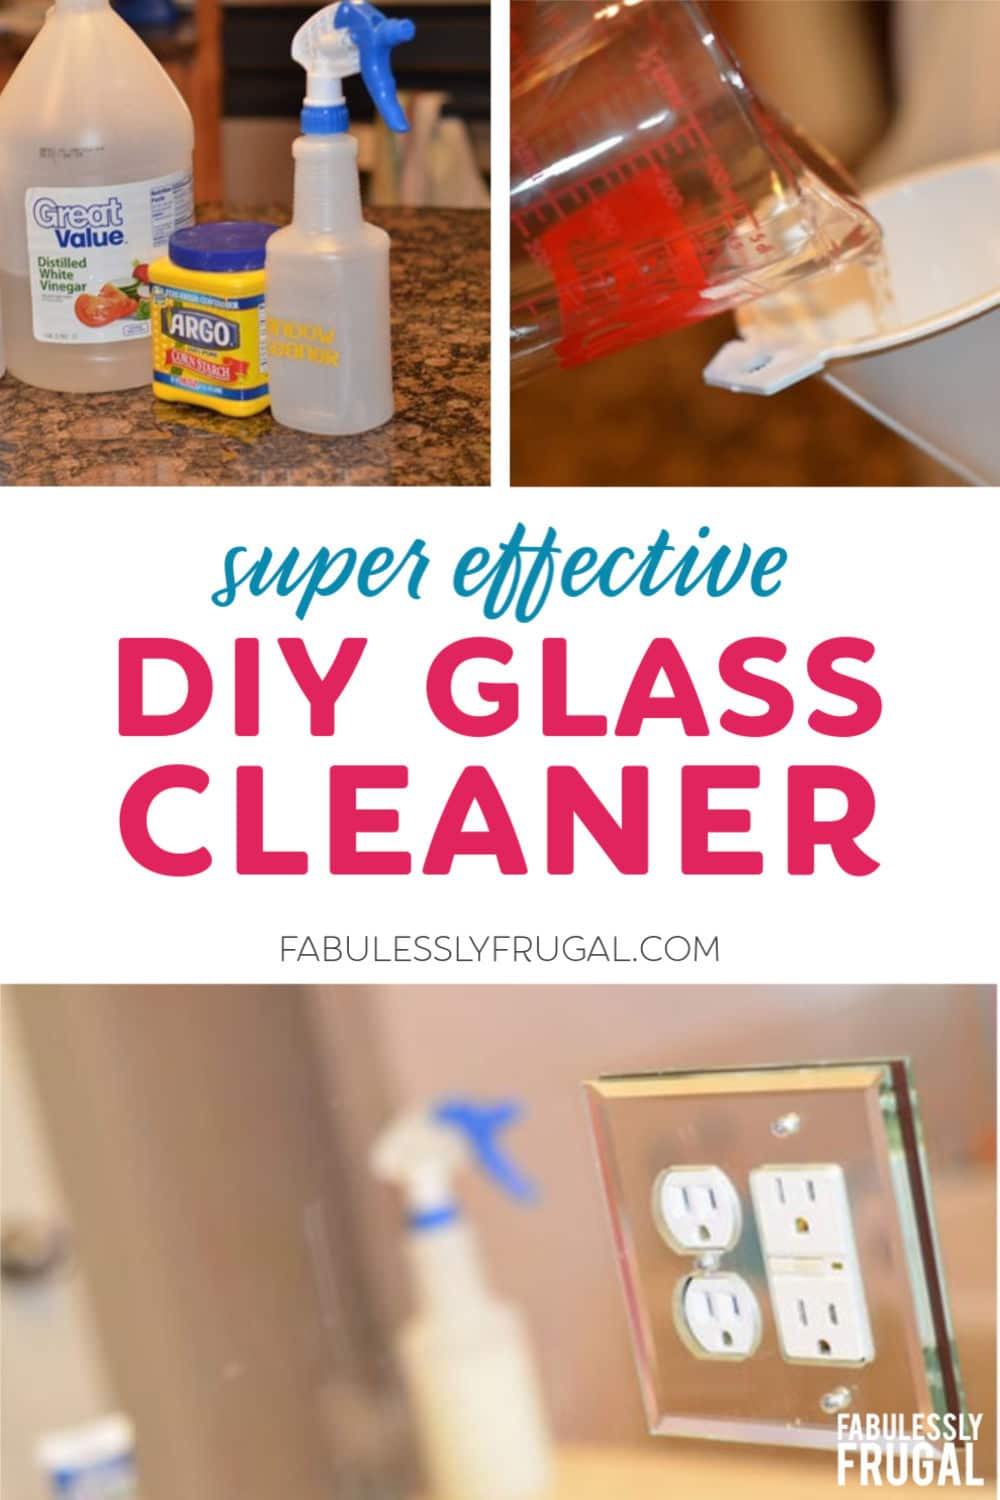 DIY glass cleaner recipe